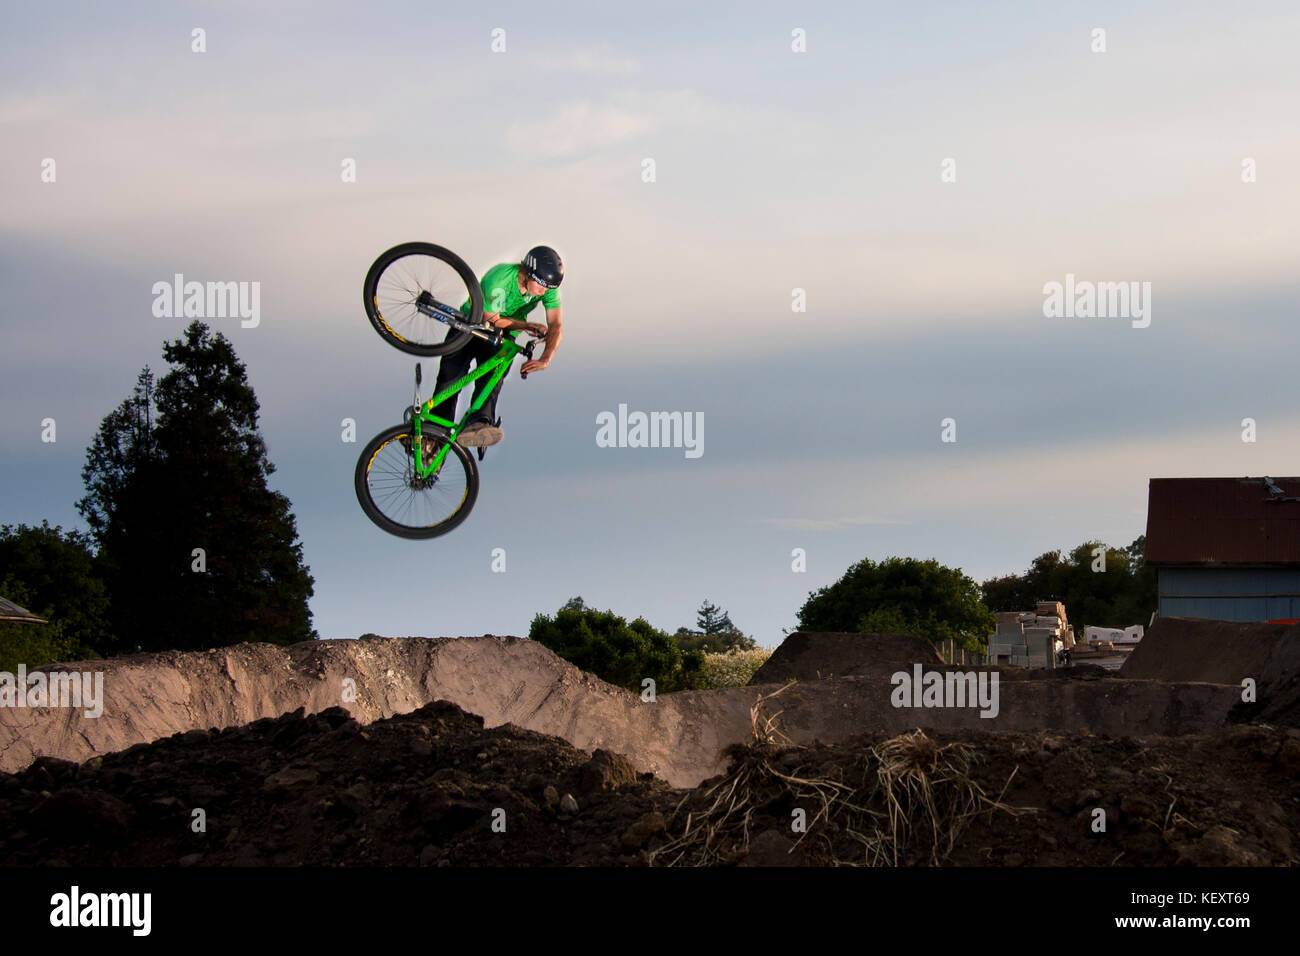 Guy French does a 'Table' at the Post Office Jumps.  Aptos, CA. April 30th, 2009 - Stock Image